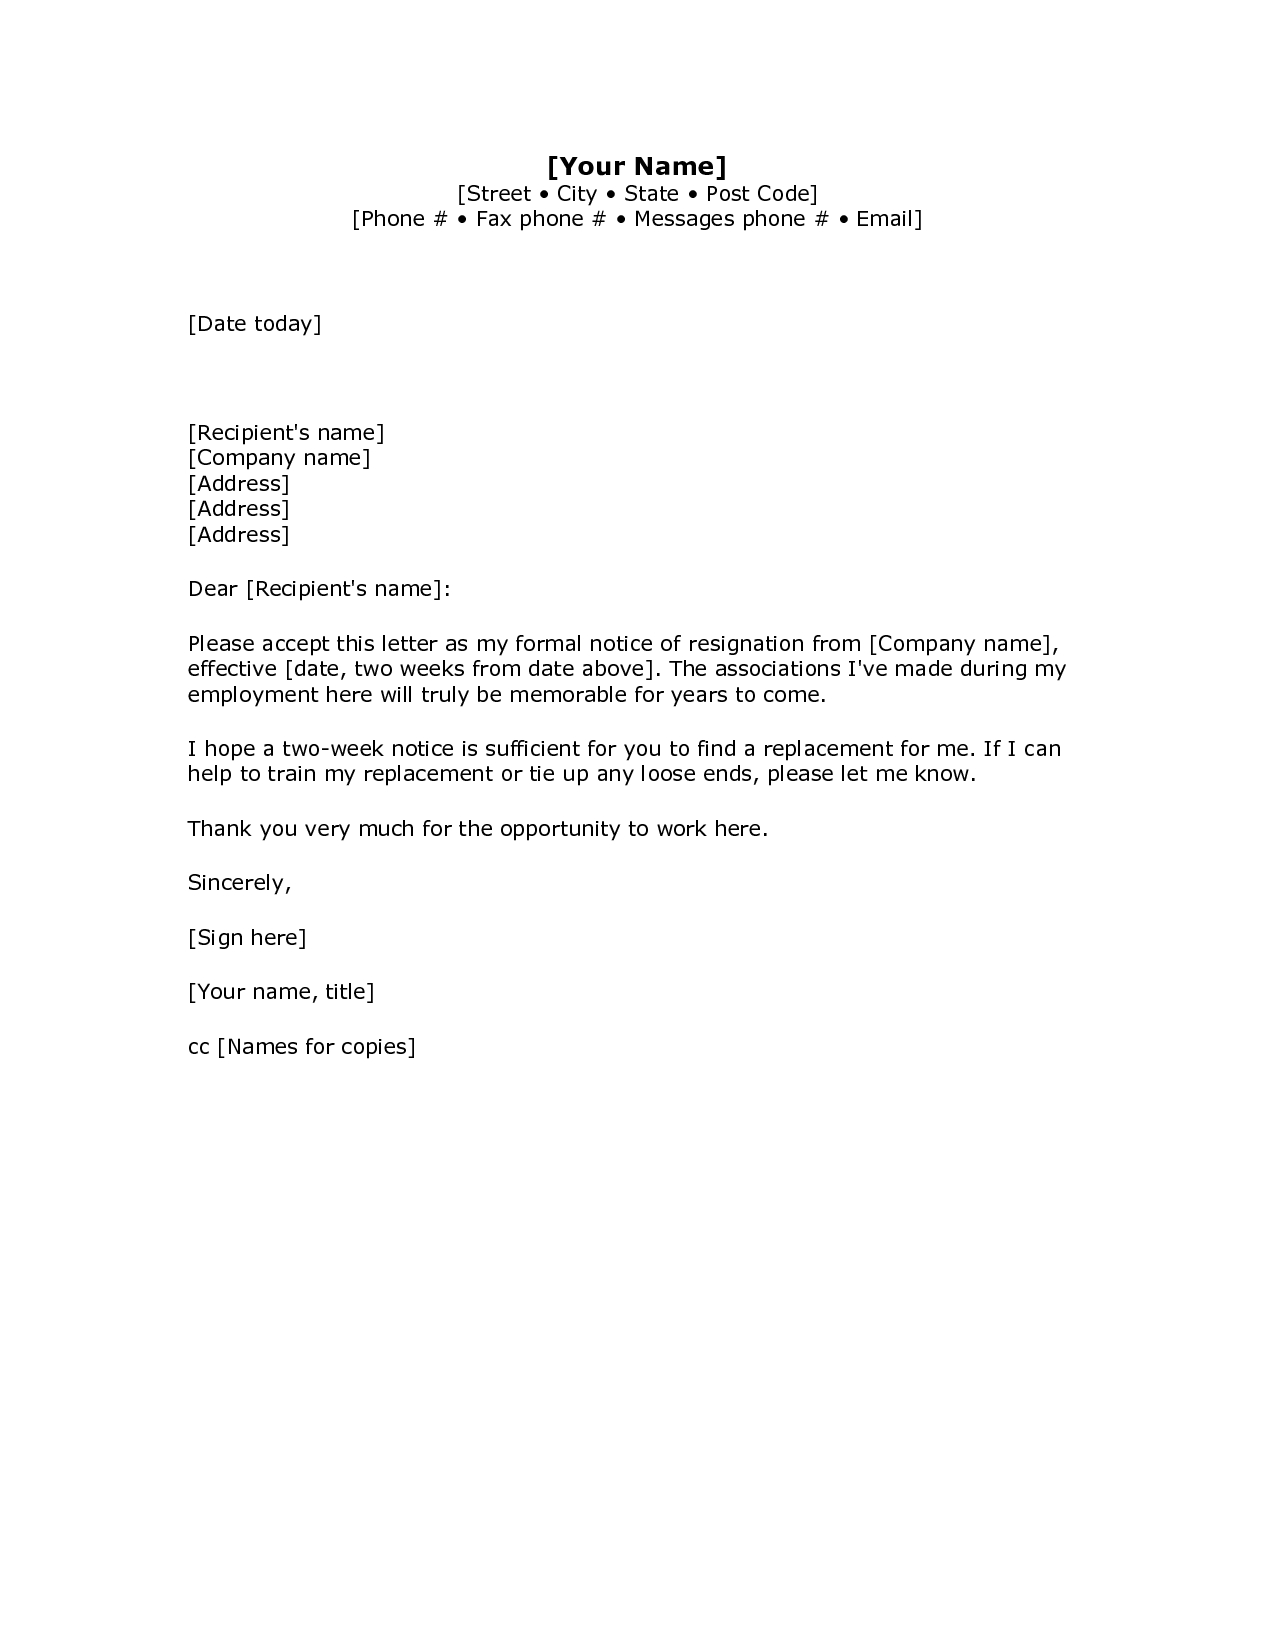 2 week notice letter template Collection-2 Weeks Notice Letter Resignation Letter Week Notice Words HDWriting A Letter Resignation Email Letter Sample 19-b